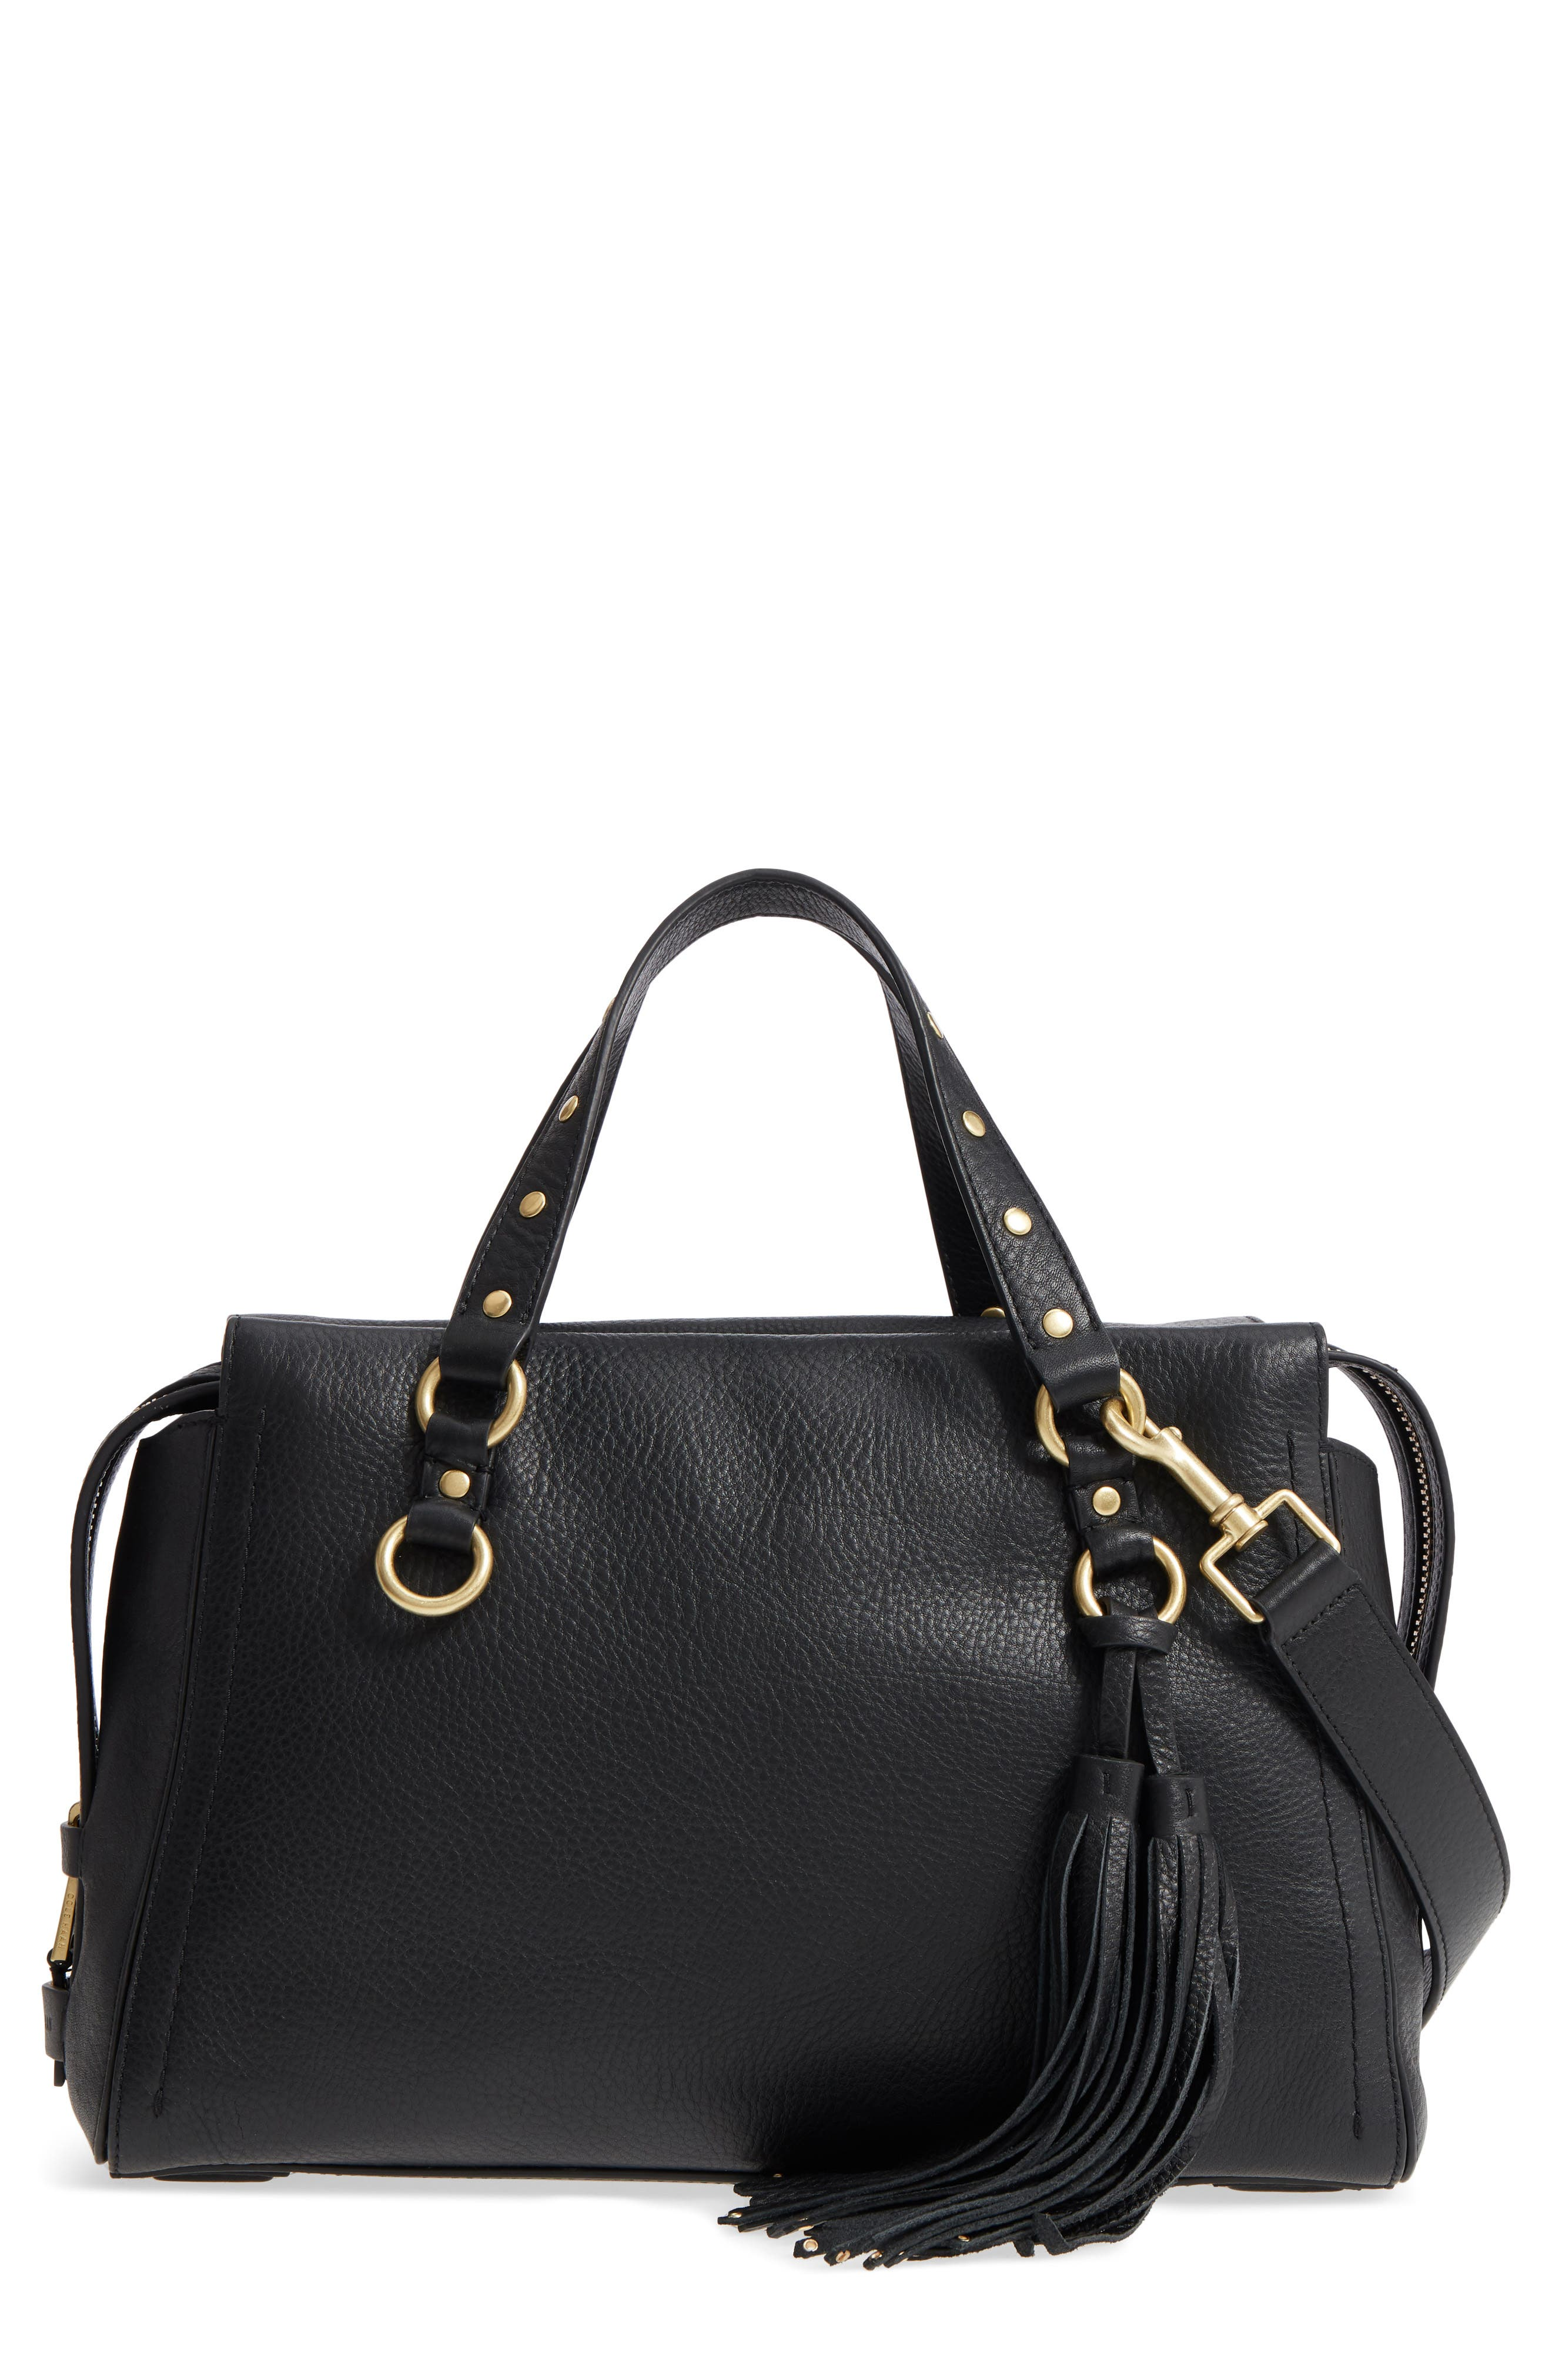 Cole Haan Cassidy RFID Pebbled Leather Satchel